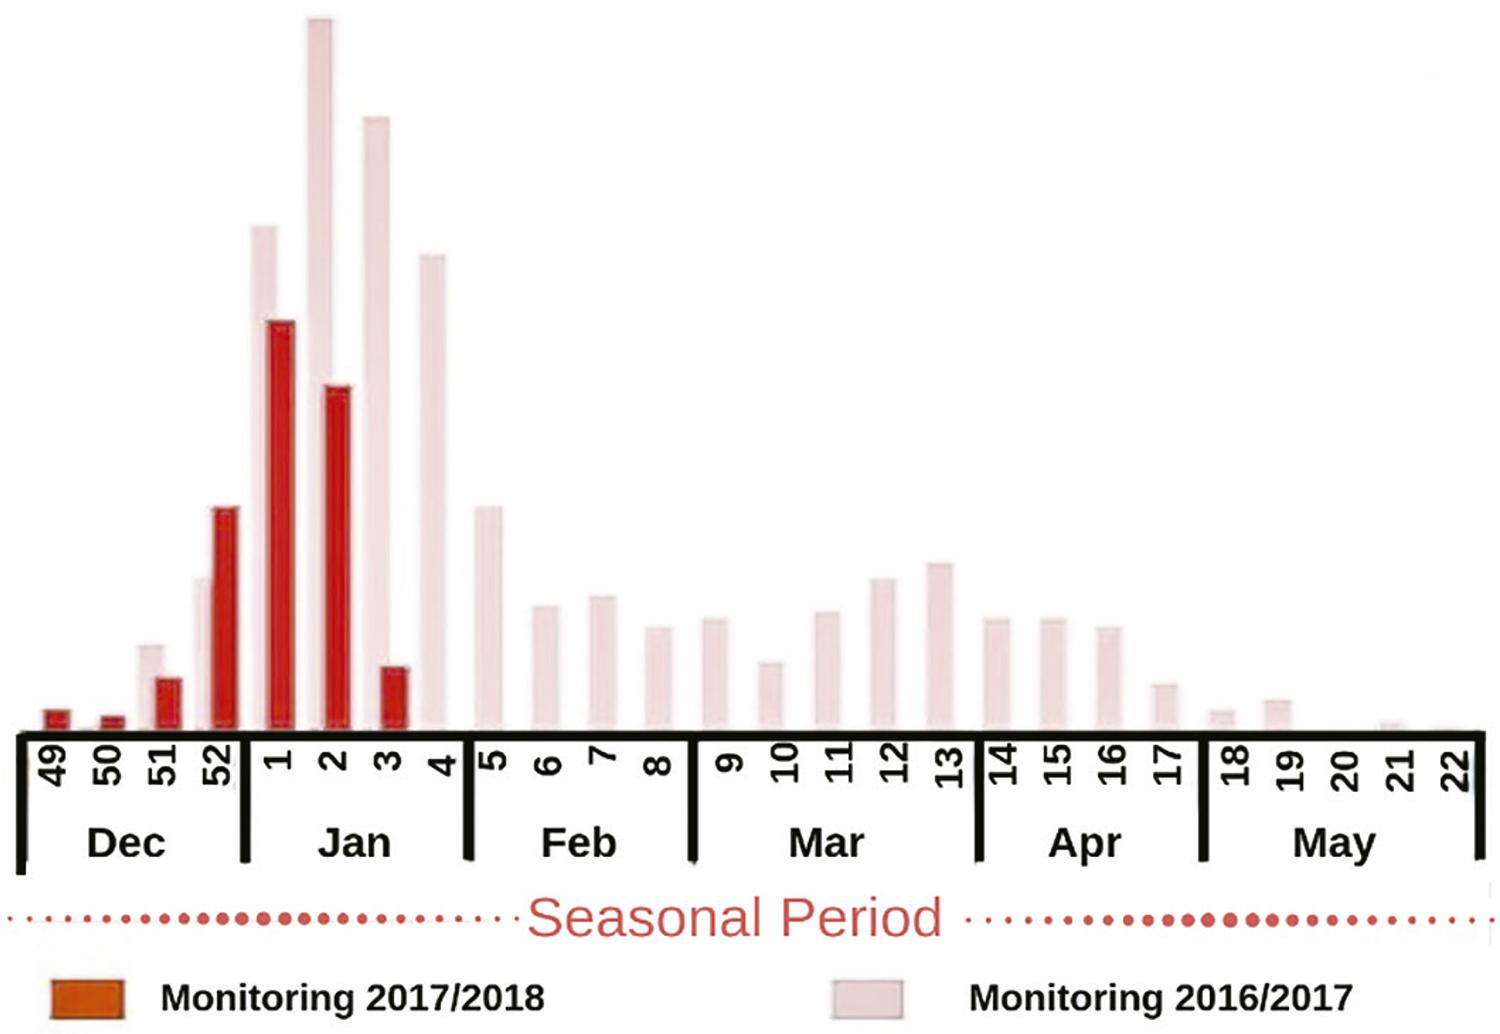 Distribution of confirmed cases of yellow fever in Brazil in the seasonal monitoring period. Adapted from Ministério da Saúde32.